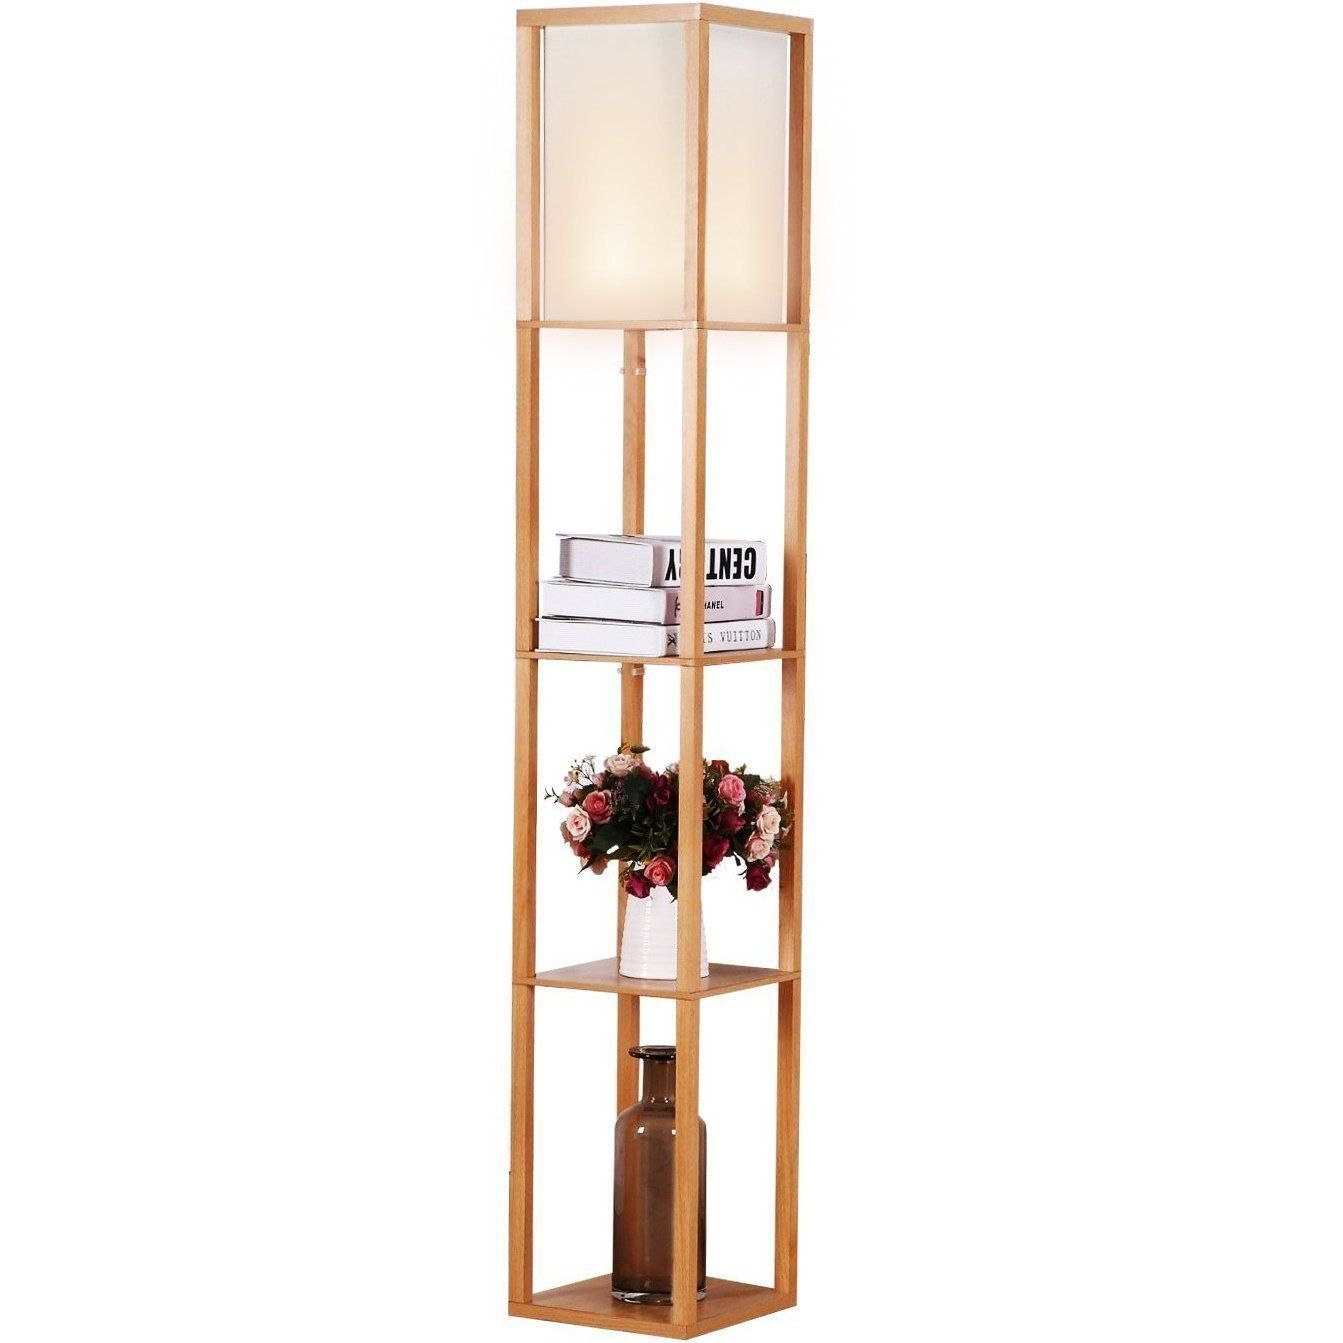 Brightech Maxwell Led Shelf Floor Lamp Modern Asian Style Standing Lamp With Soft Diffused Up Floor Lamp With Shelves Modern Floor Lamps Wooden Floor Lamps